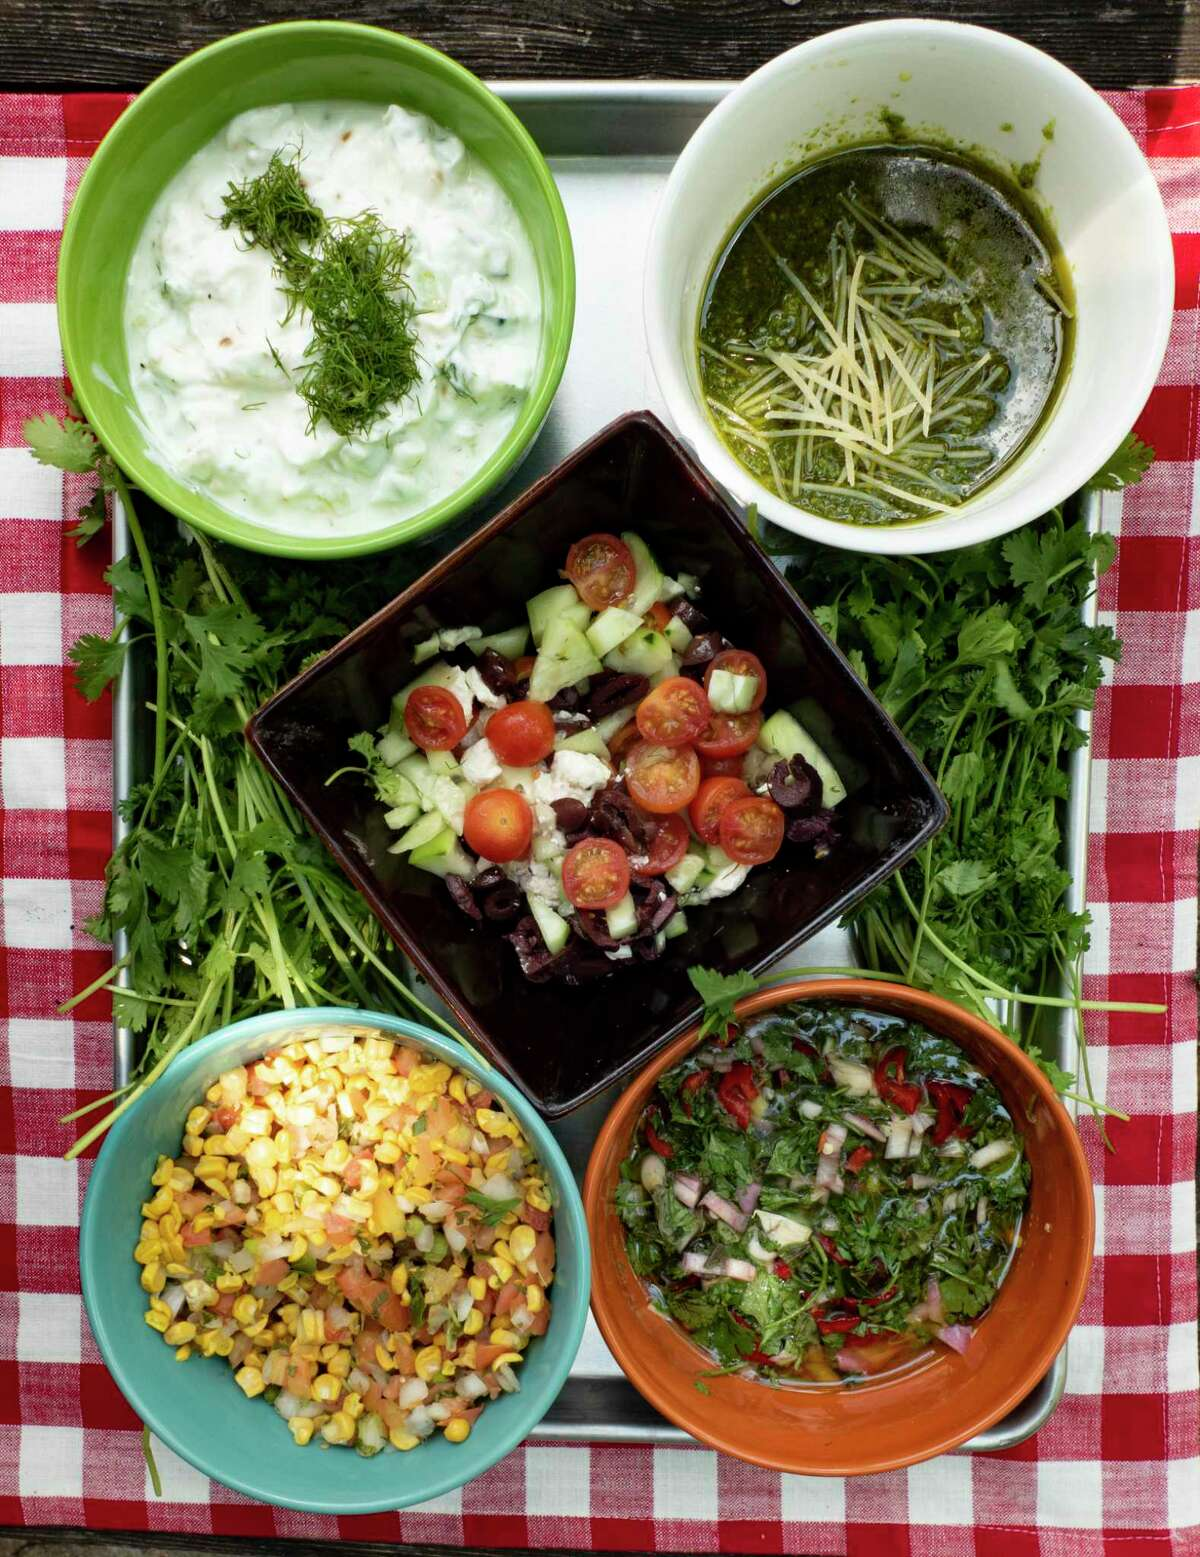 Toppings for hot dogs include (clockwise from top left): Tzatziki, pesto with Parmesan, chimichurri, pico de gallo with roasted corn and, in the middle, a Greek salad.